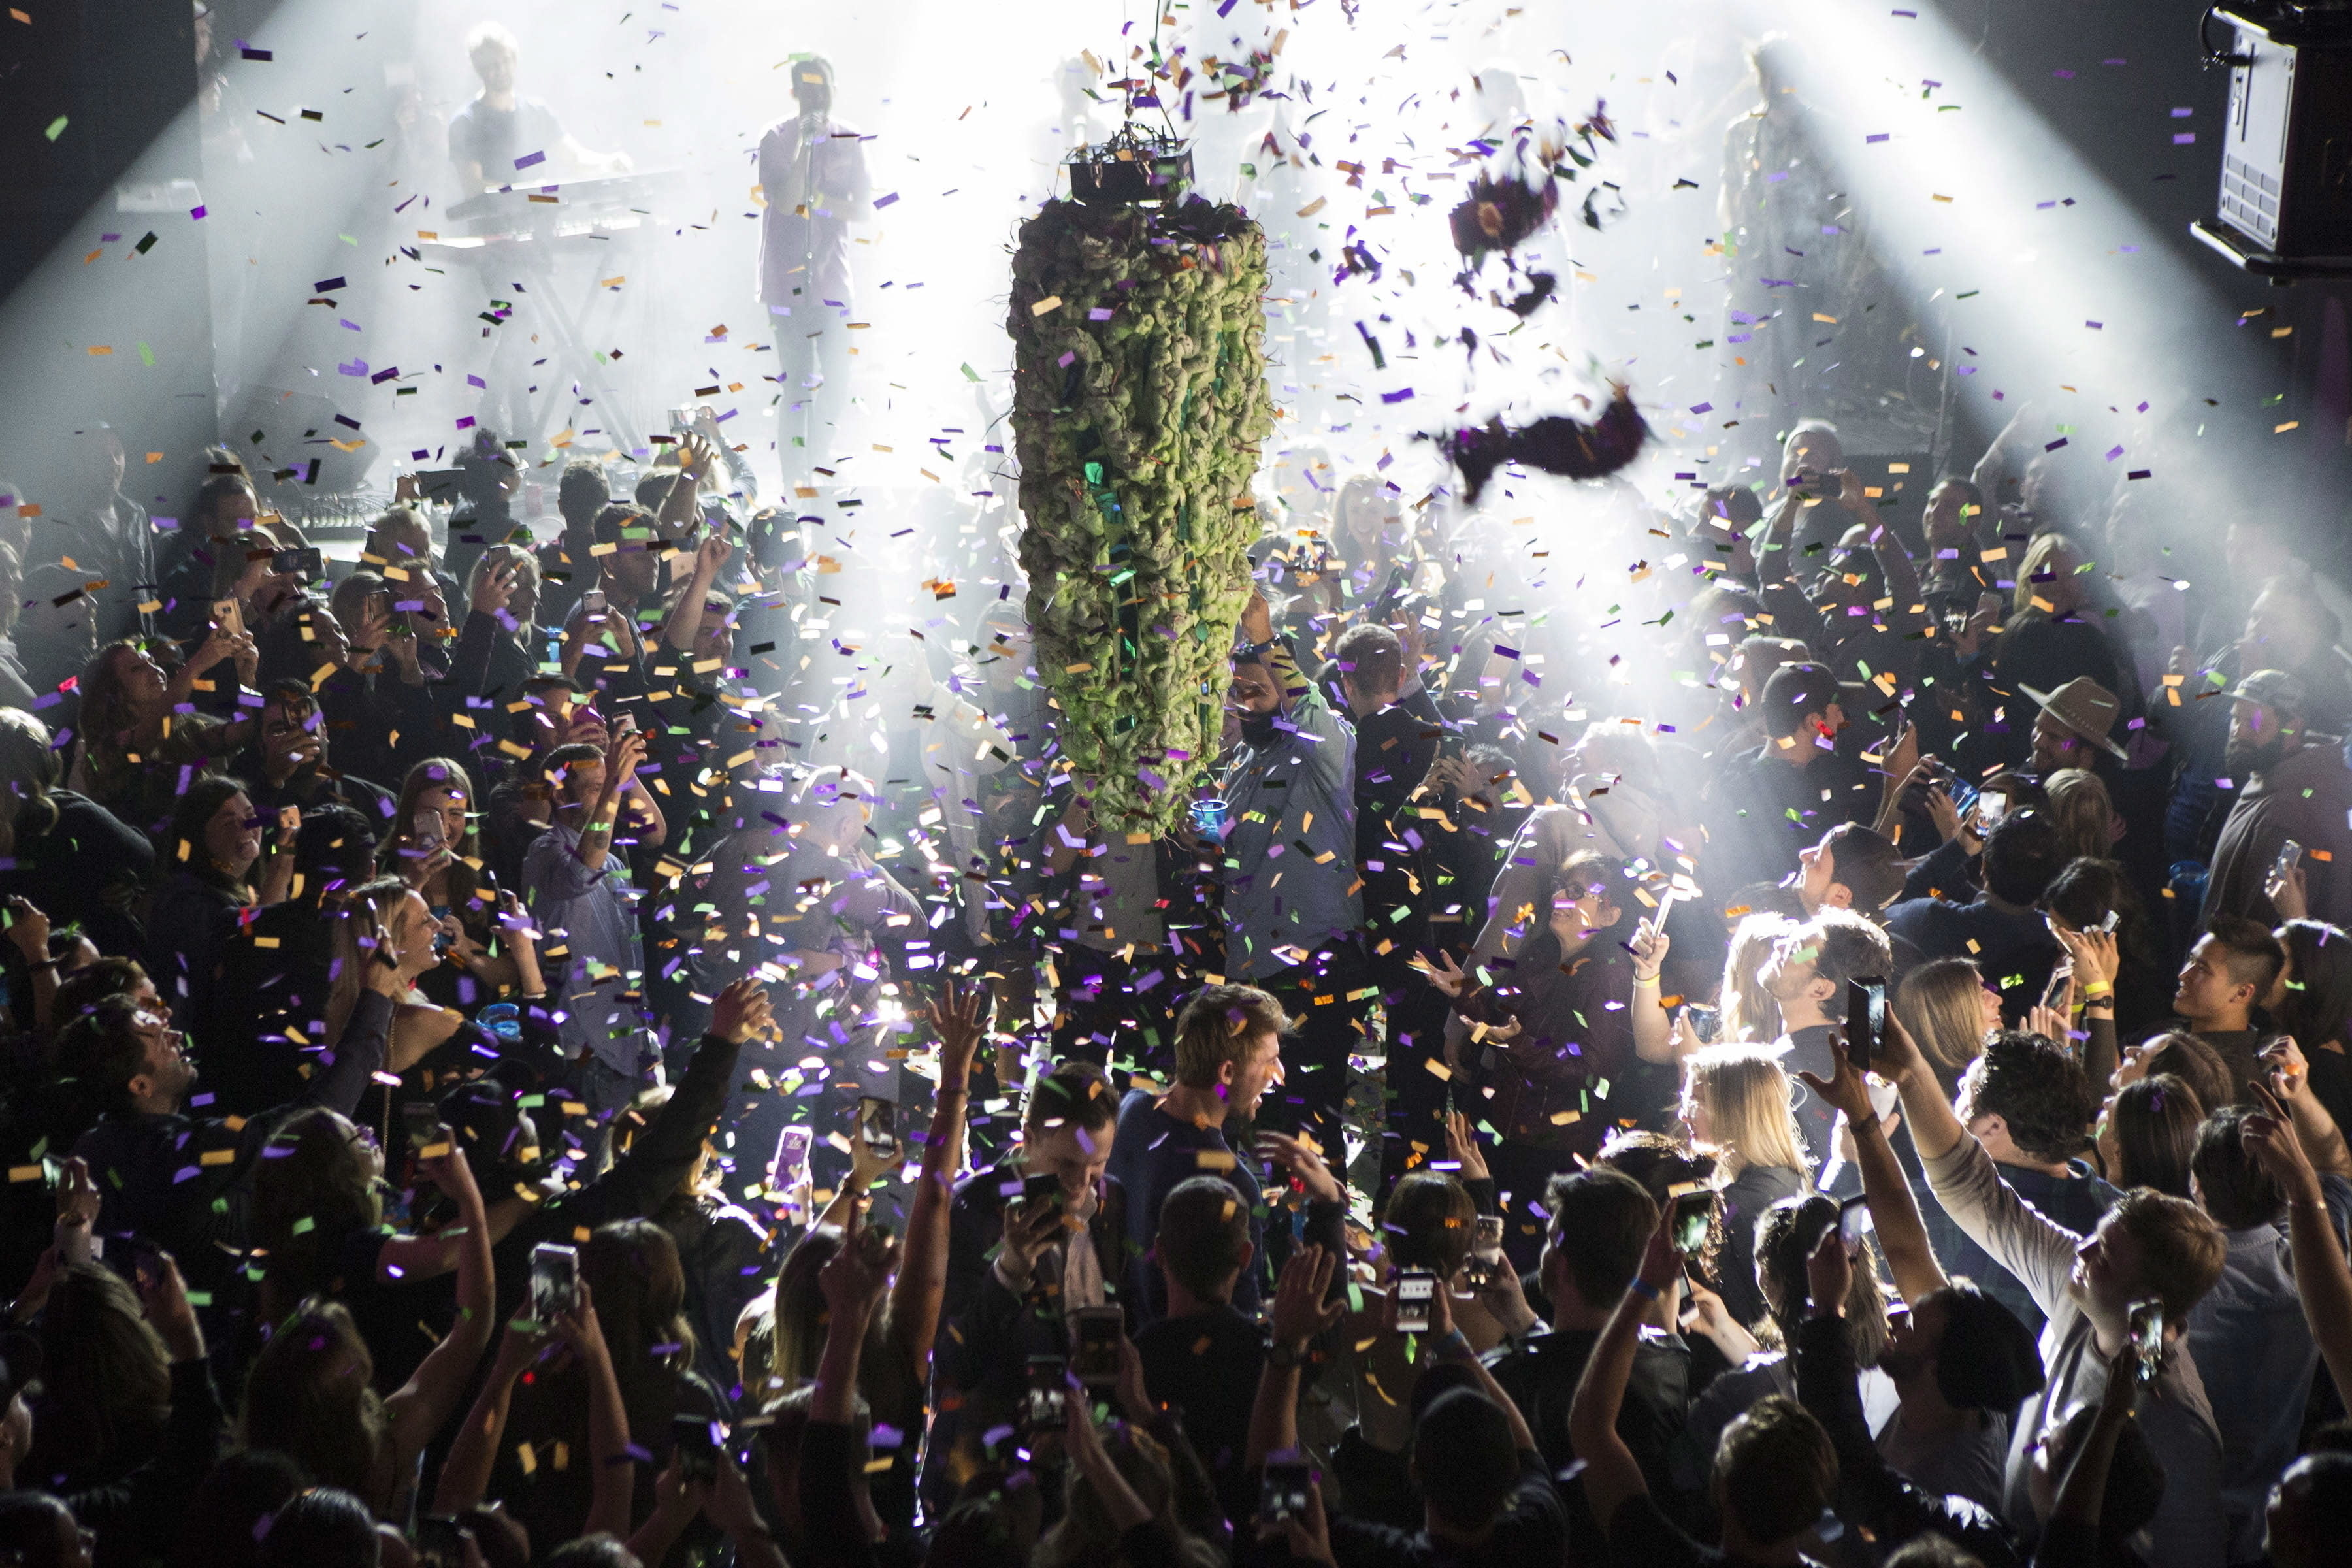 FILE - In this Oct. 17, 2018, file photo, a depiction of a cannabis bud drops from the ceiling at Leafly's countdown party in Toronto, as midnight passes and marks the first day of the legalization of cannabis across Canada. China has become the latest Asian country to warn its citizens in Canada about marijuana after it was legalized for recreational use there. (Chris Young/The Canadian Press via AP, File)